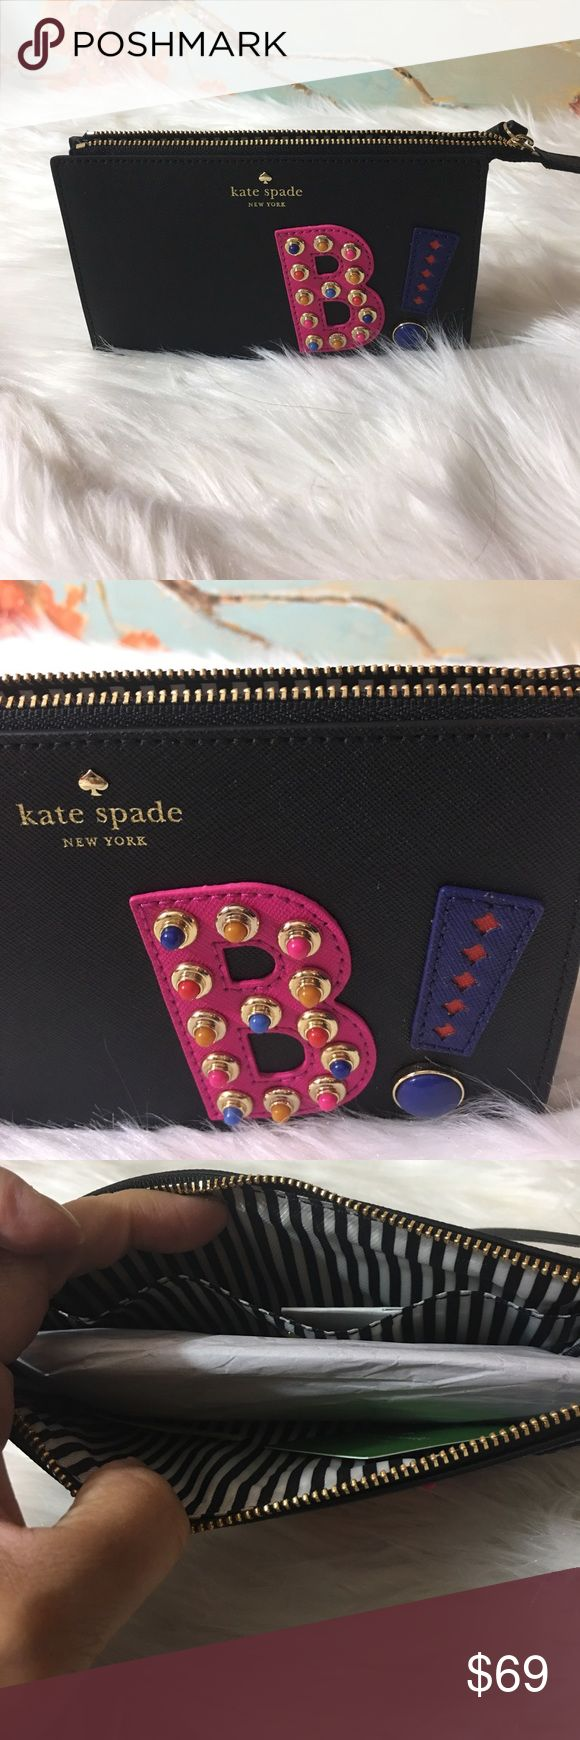 """Kate Spade Hartly Lane Clutch Brand new kate spade new york crosshatched leather wristlet. Embellished """"B!"""" text on front. Golden hardware. Zip top closure; wristlet pull strap, 6"""" drop. Foiled logo and spade stud. Interior, striped twill lining; one slip pocket. 5""""H x 7""""W x 1""""D. kate spade Bags Mini Bags"""